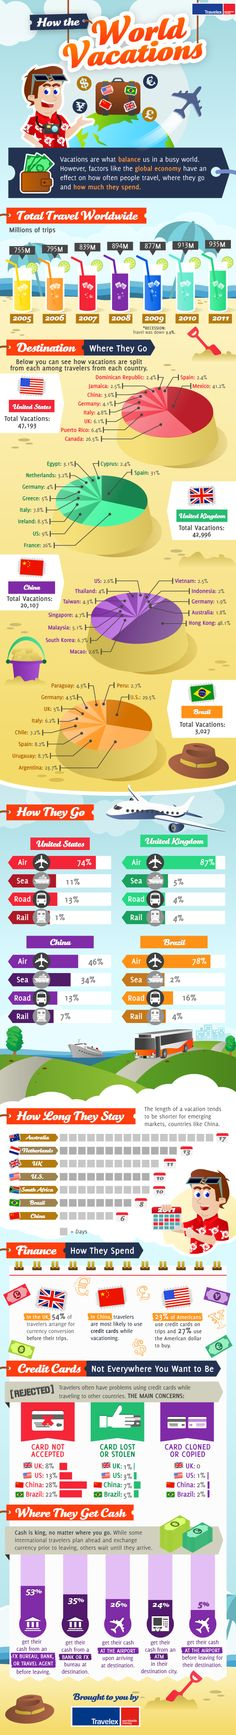 How the World Vacations - a survey by Travelex -- we wrote about the findings of this survey yesterday, at the invitation of the infographic designer: http://thedisplacednation.com/2012/06/18/how-the-world-vacations-according-to-travelex/